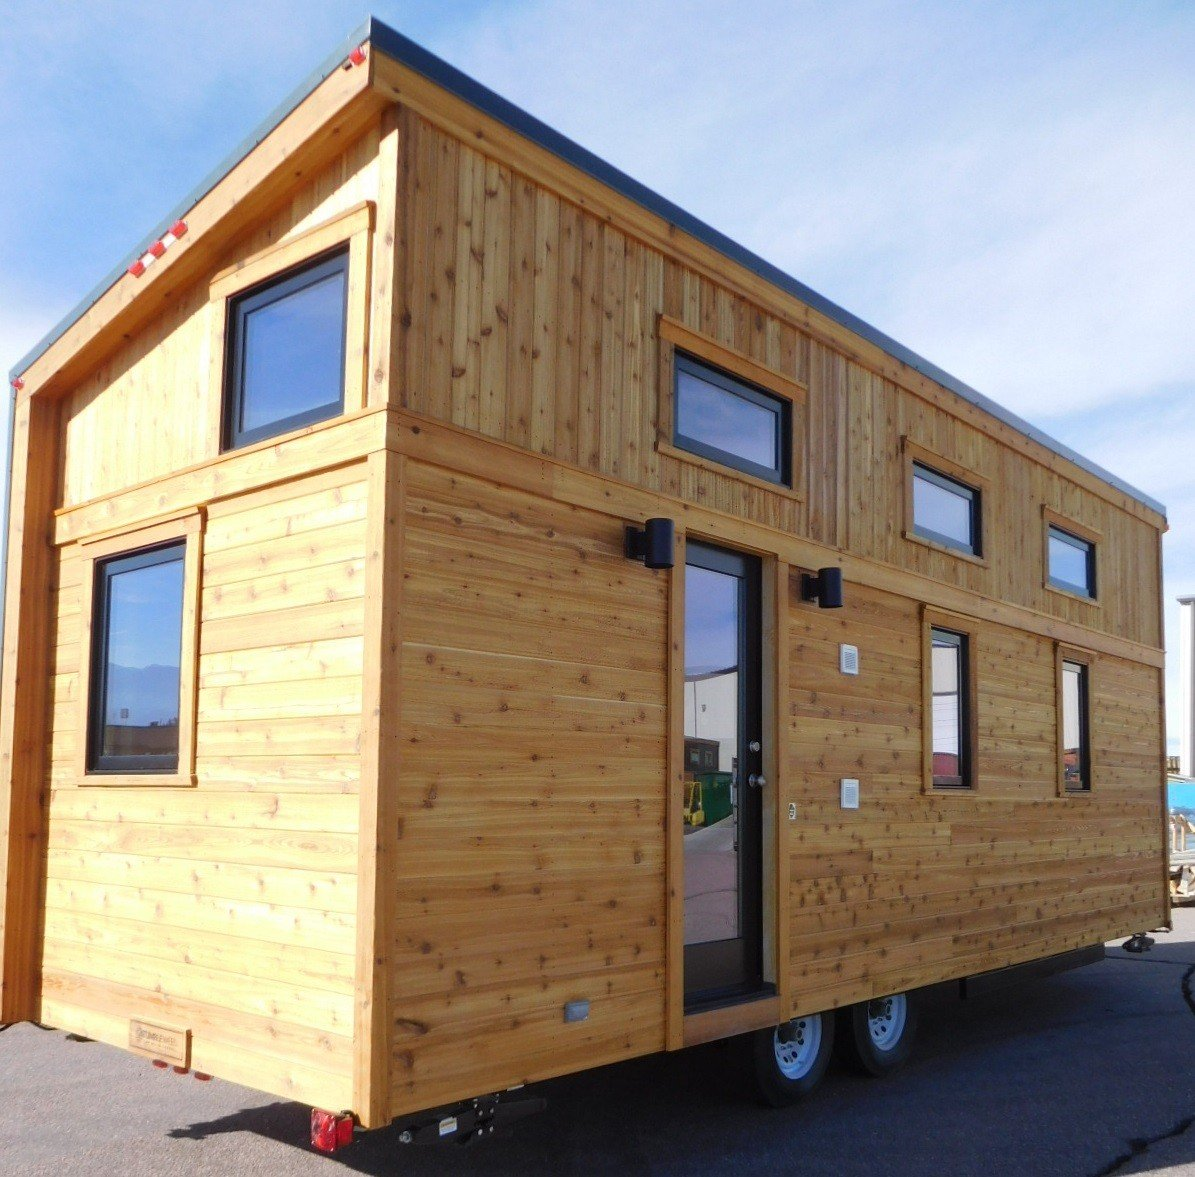 can tag home cabin prefab warm arched for under cabins vacation prefabricated a lead inhabitat innovation green texas provide design architecture in